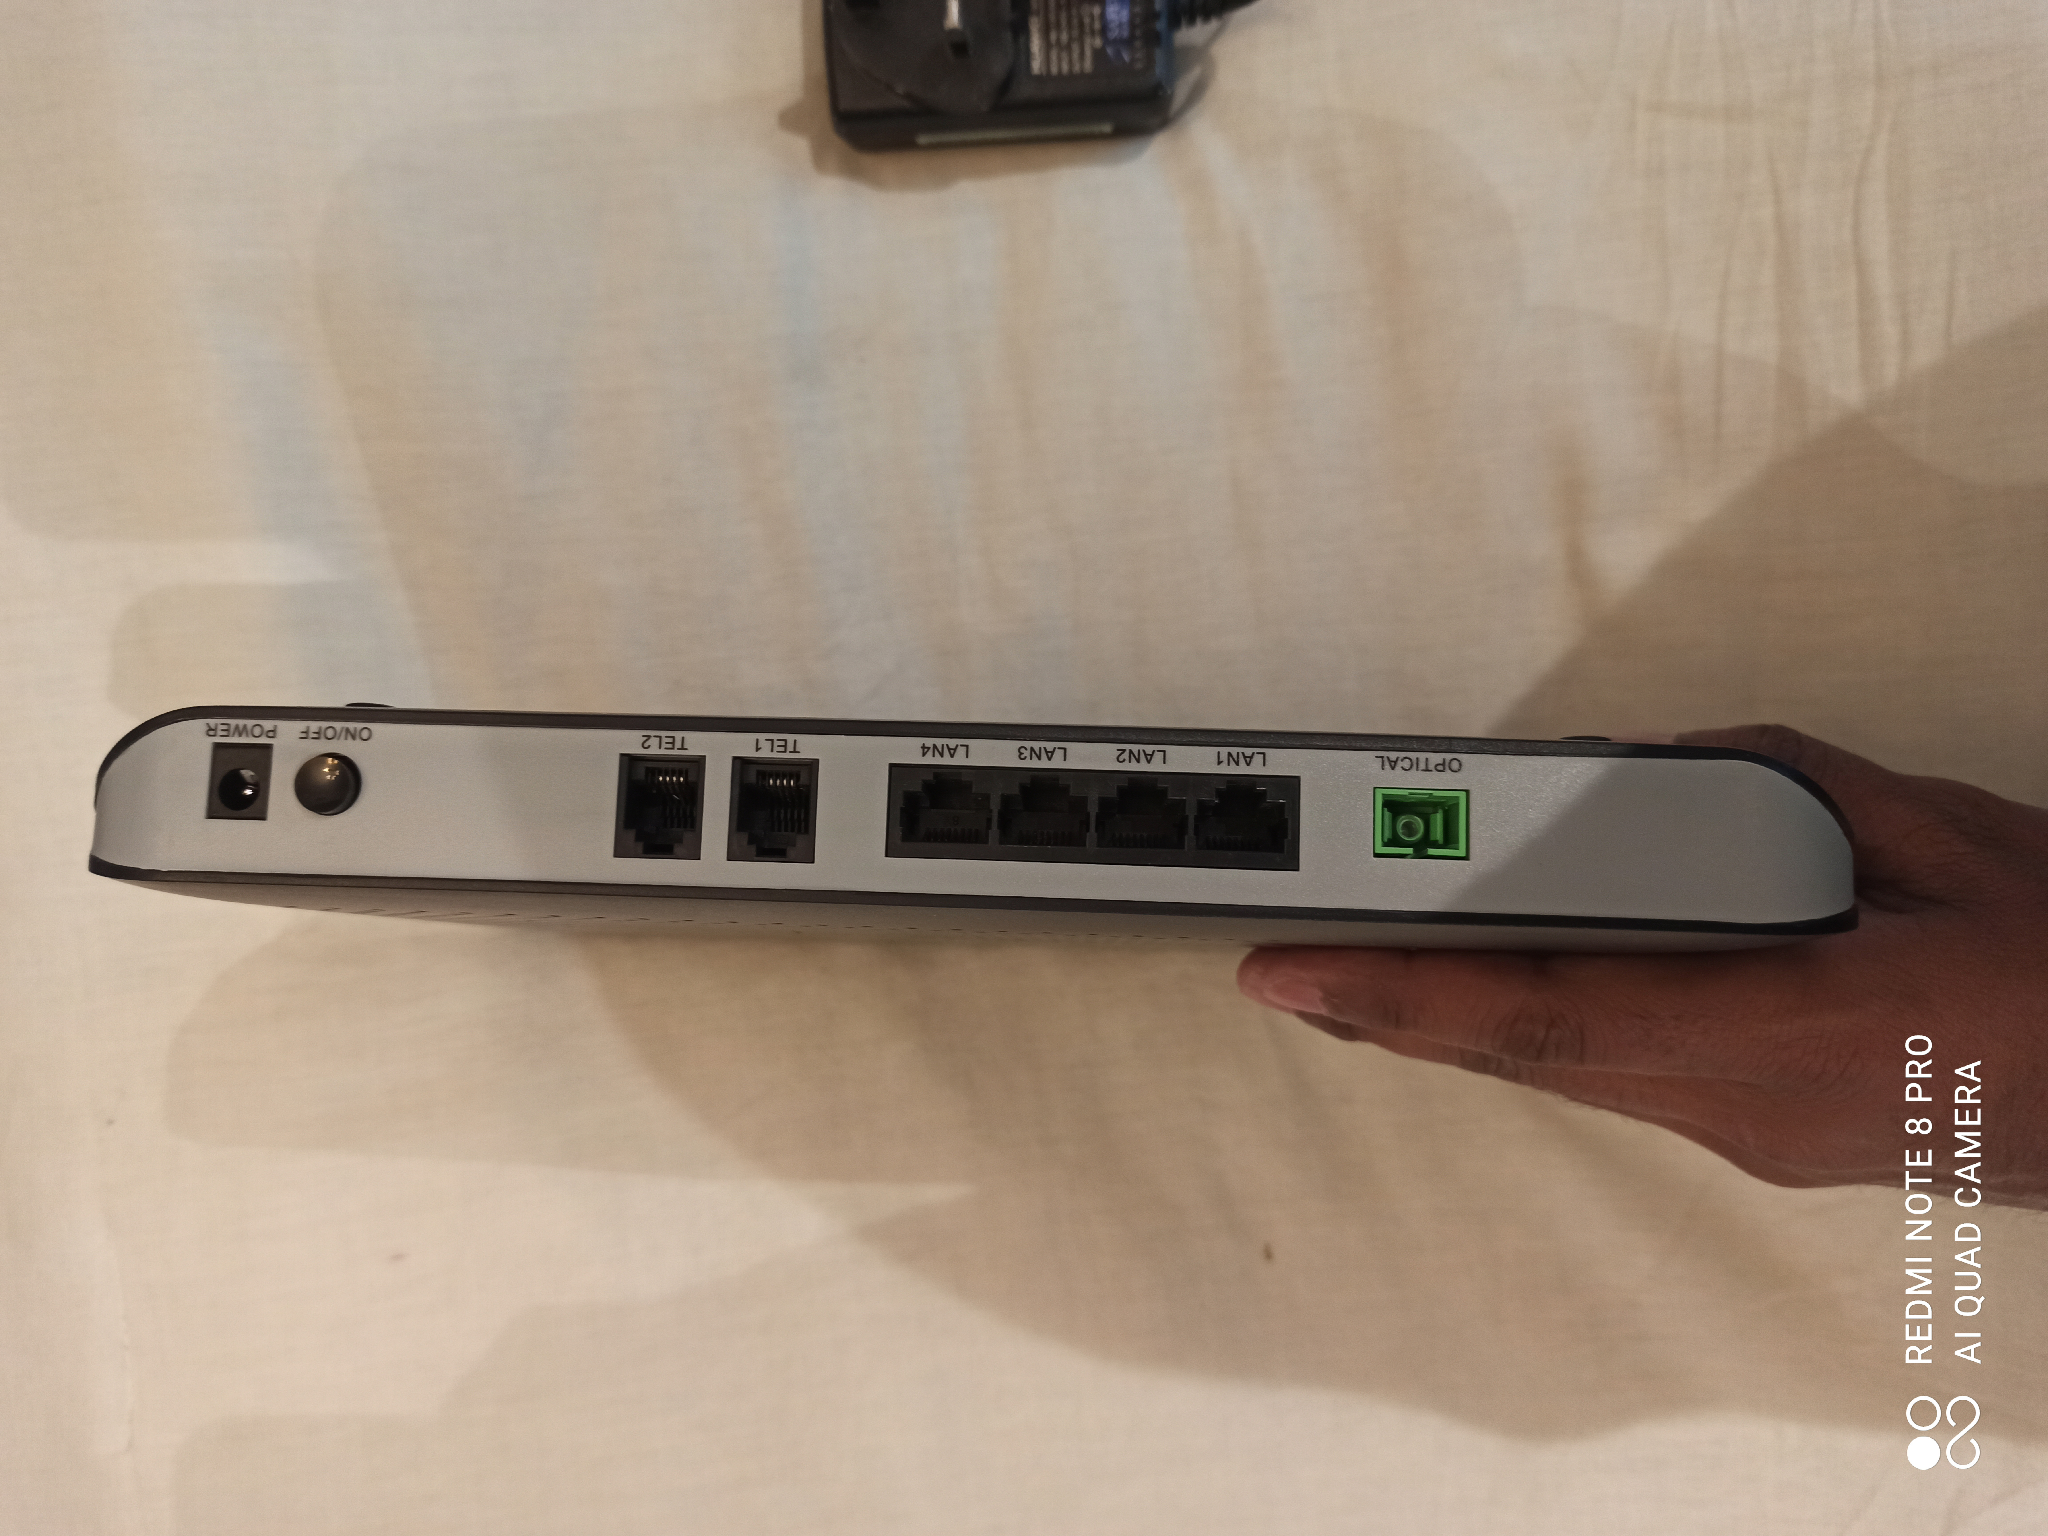 Two WiFi router for sale